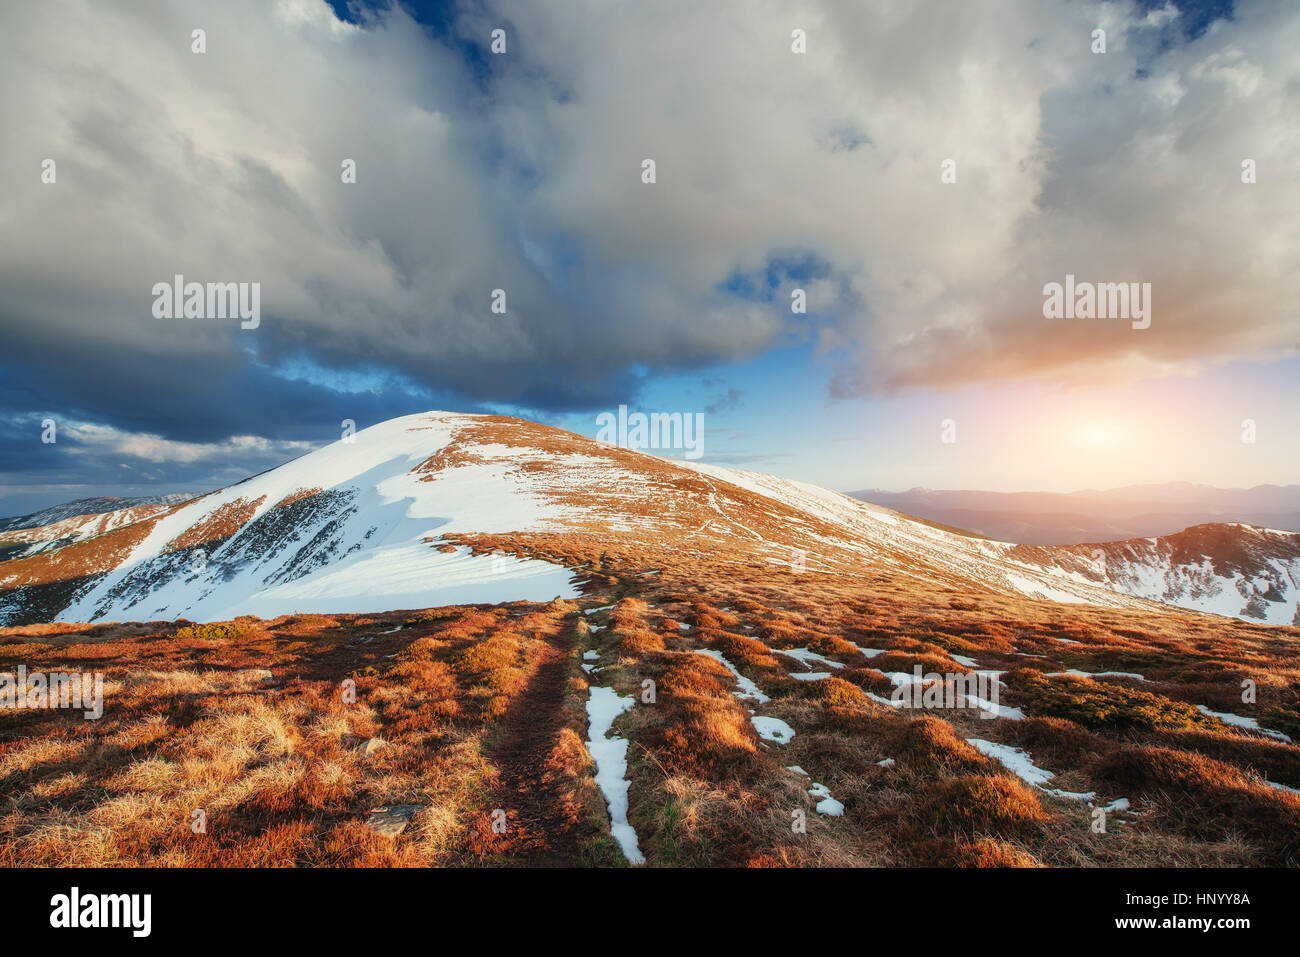 Spring mountain landscape. Snowy Mountains - Stock Image